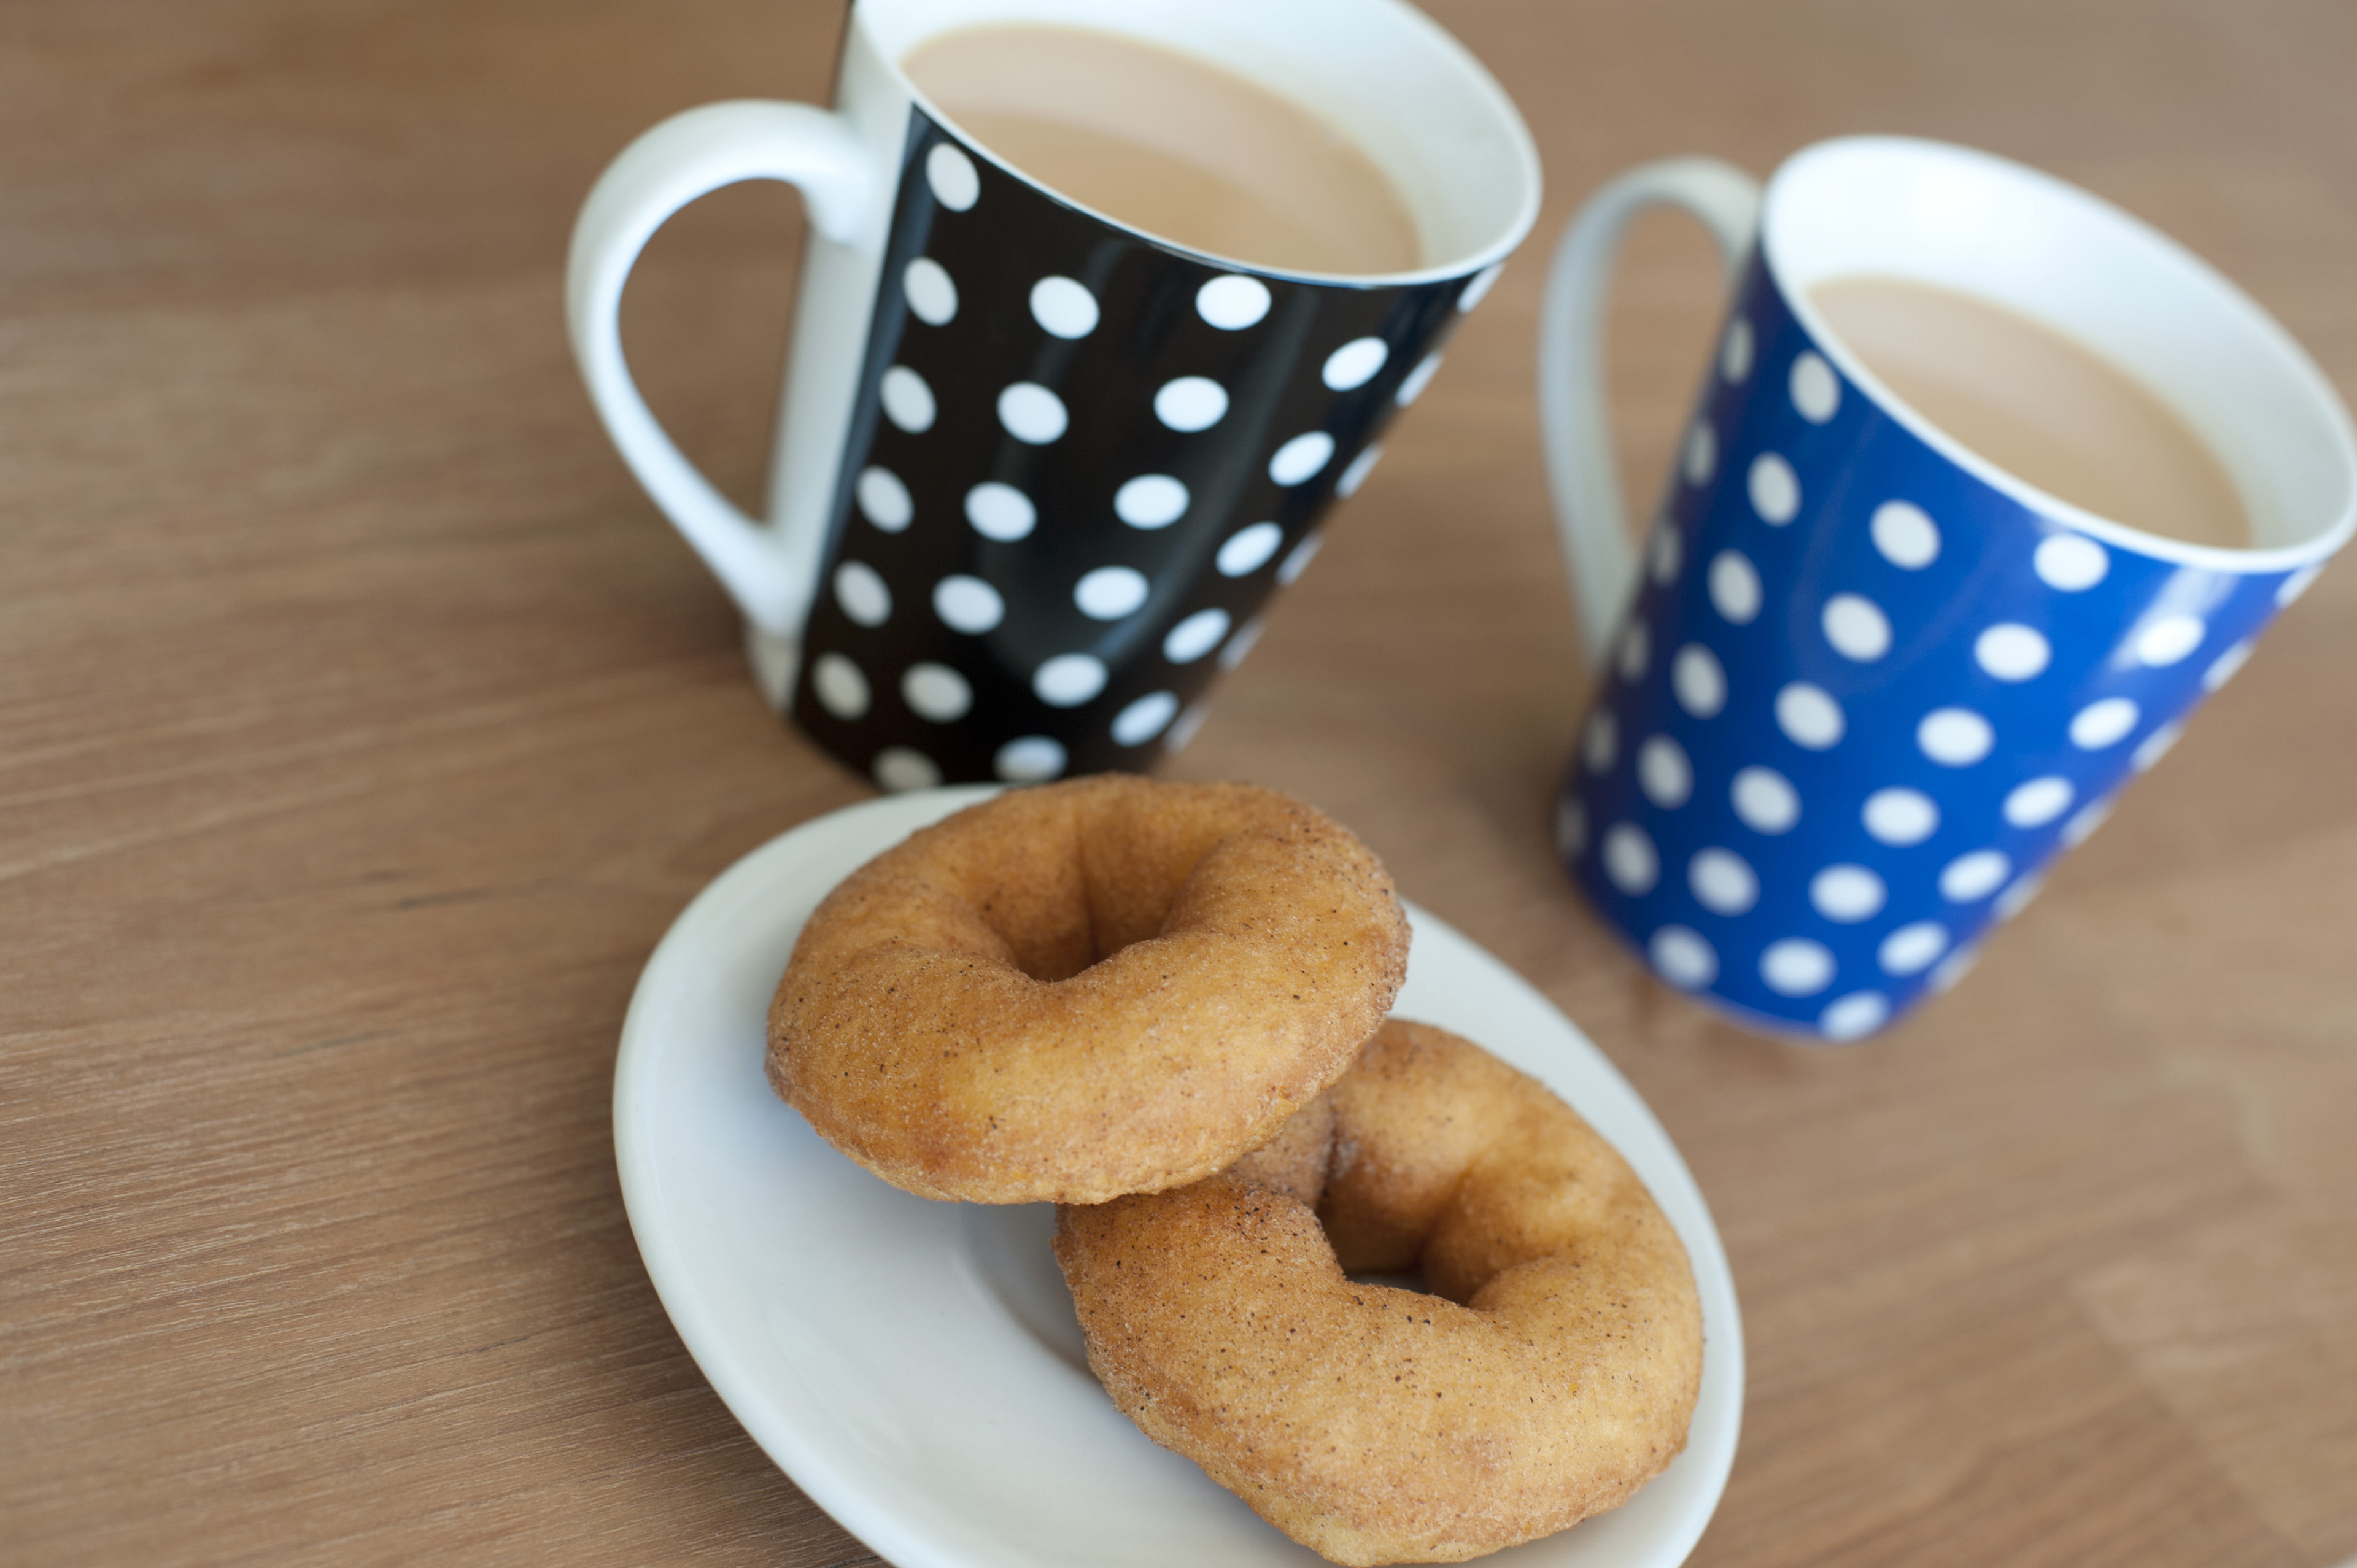 Close up Cups of Tea and Sweet Doughnuts on Plate Served on Top of Wooden Table